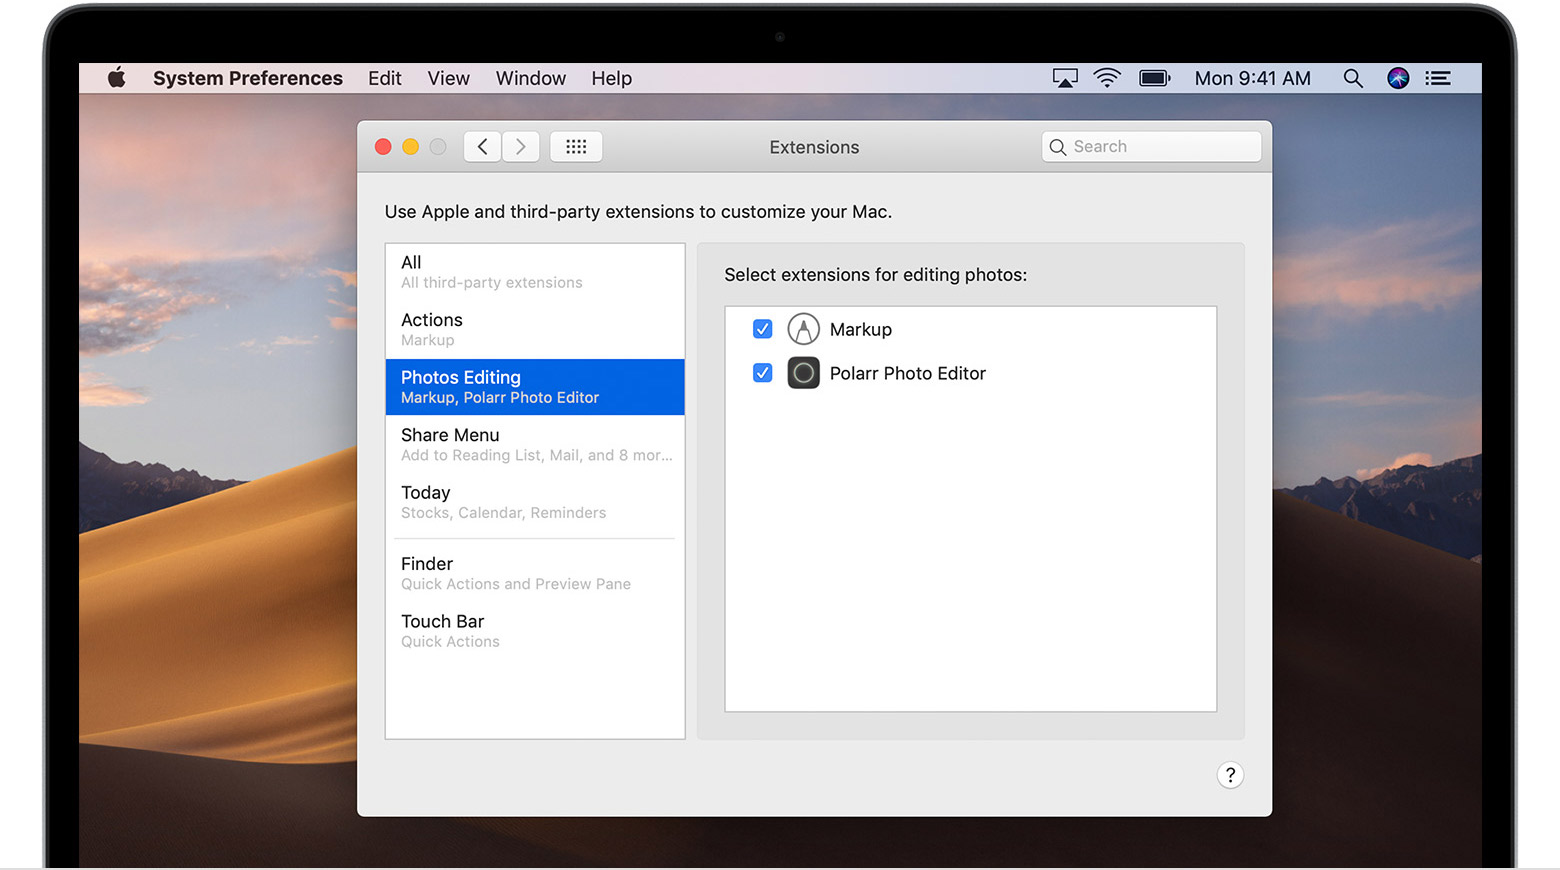 Mac display showing available third-party extensions